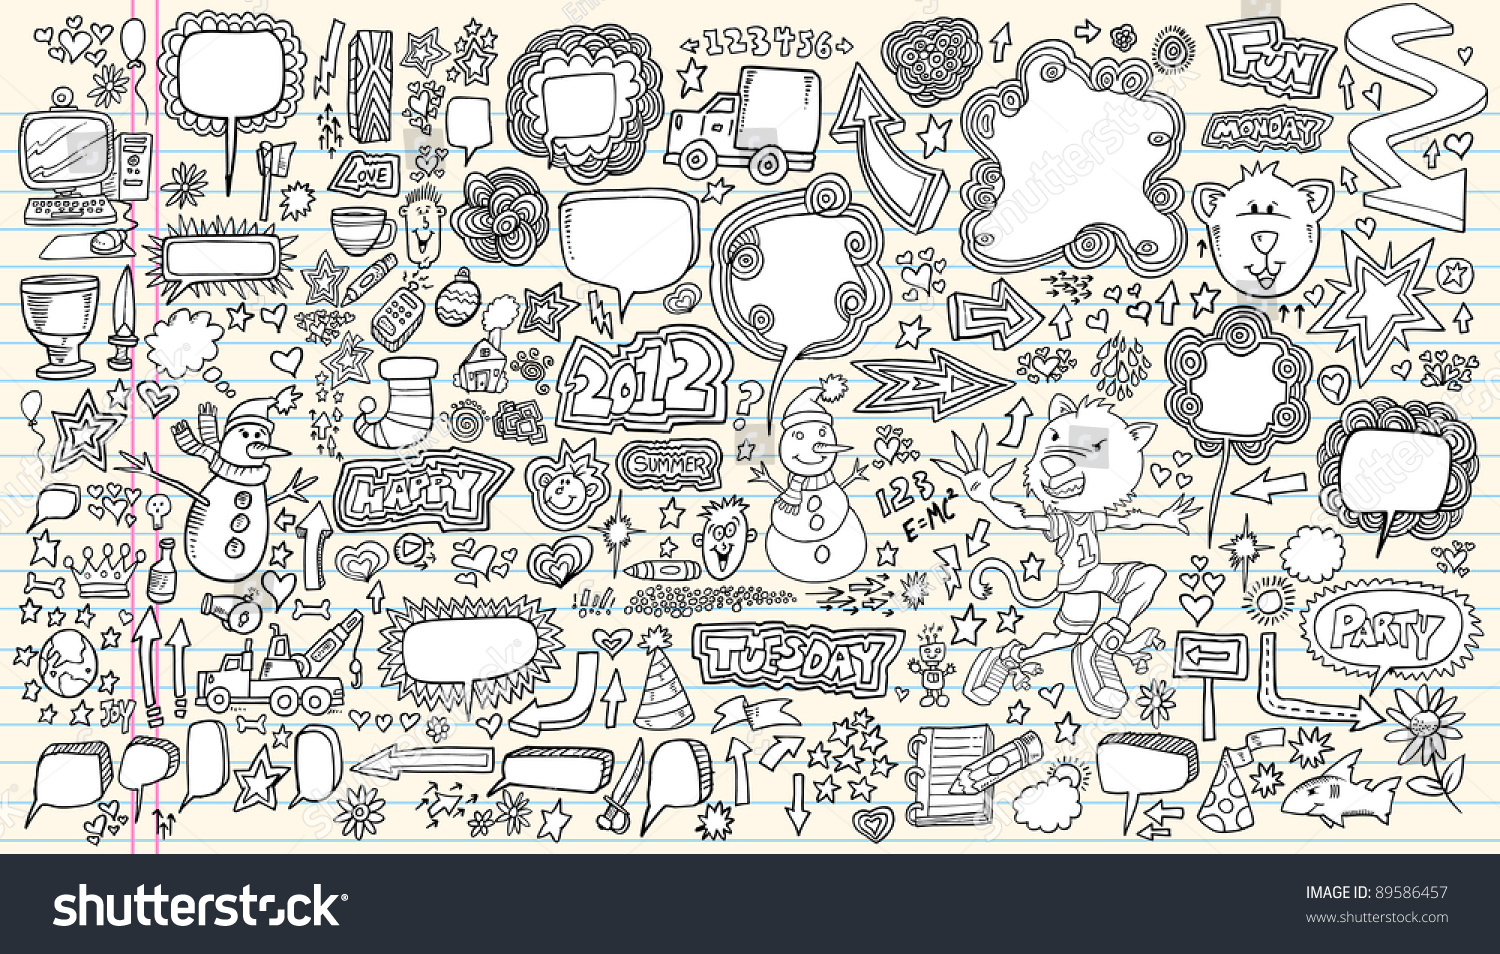 Notebook And Pen Sketch Stock Vector Art More Images Of: Notebook Doodle Speech Bubble Design Elements Stock Vector